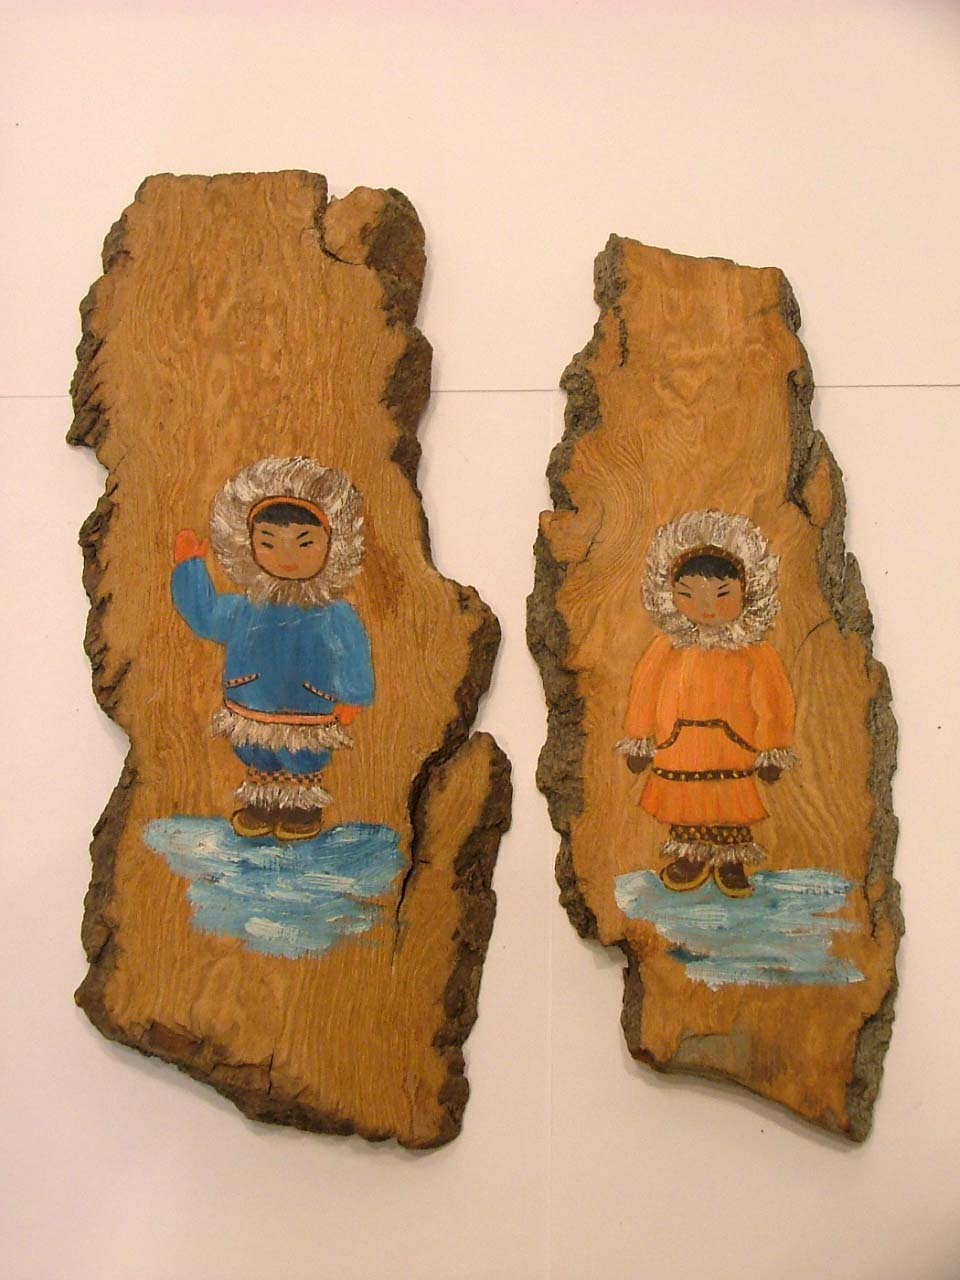 Oil Paintings on Alaska Cottonwood Bark by Jane Wilk &ndash; Eskimo Seen &ndash; 7 Pieces